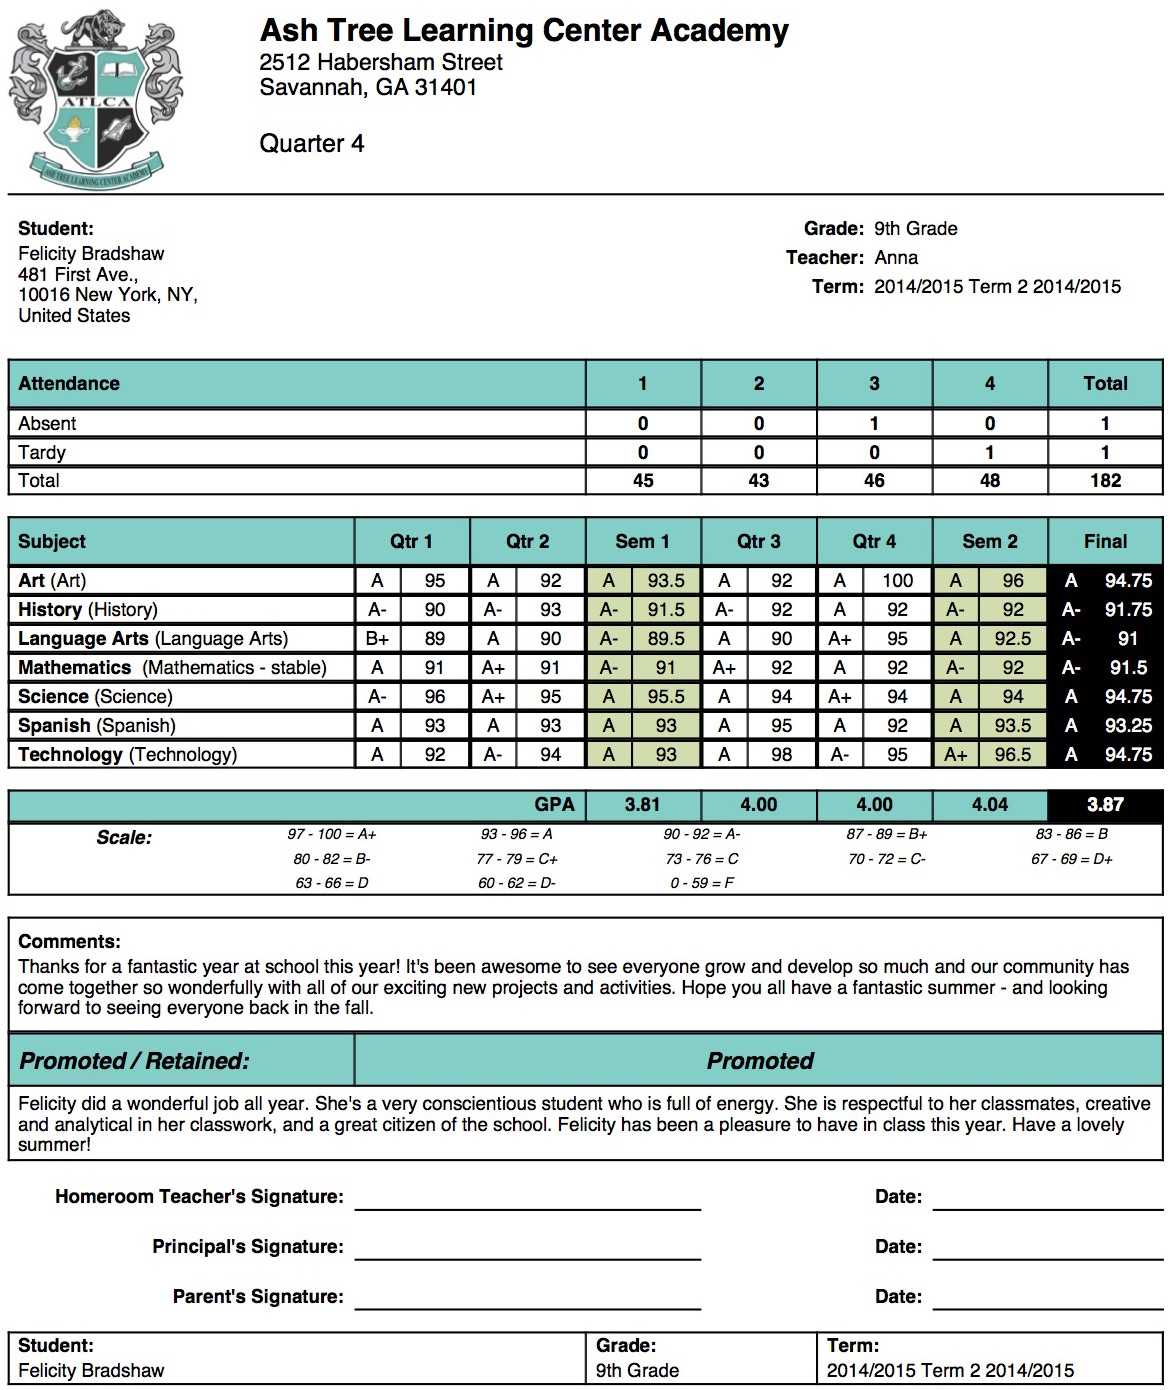 Sample High School Report Card - Zohre.horizonconsulting.co Intended For High School Student Report Card Template